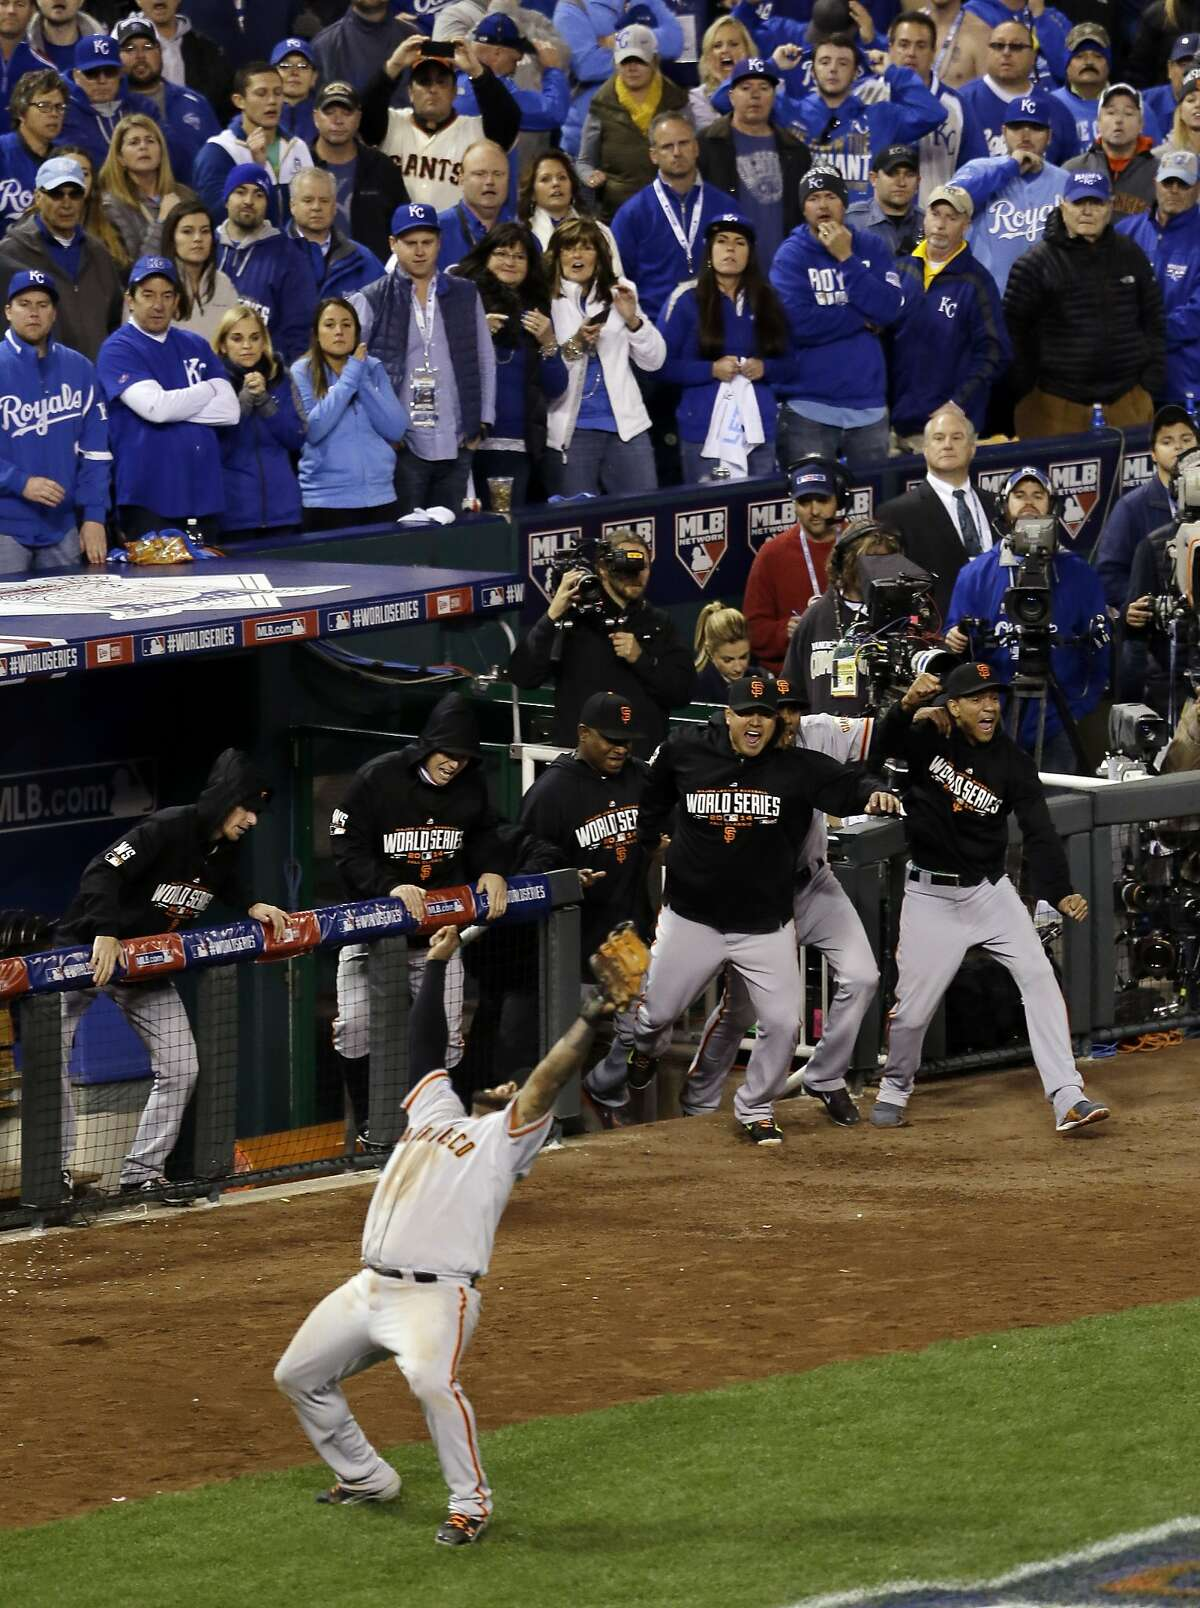 MIGHTY K.C. HAS POPPED OUT: A joyful Panda (Pablo Sandoval) falls backward after catching the final out in the ninth inning of Game 7 of the World Series.